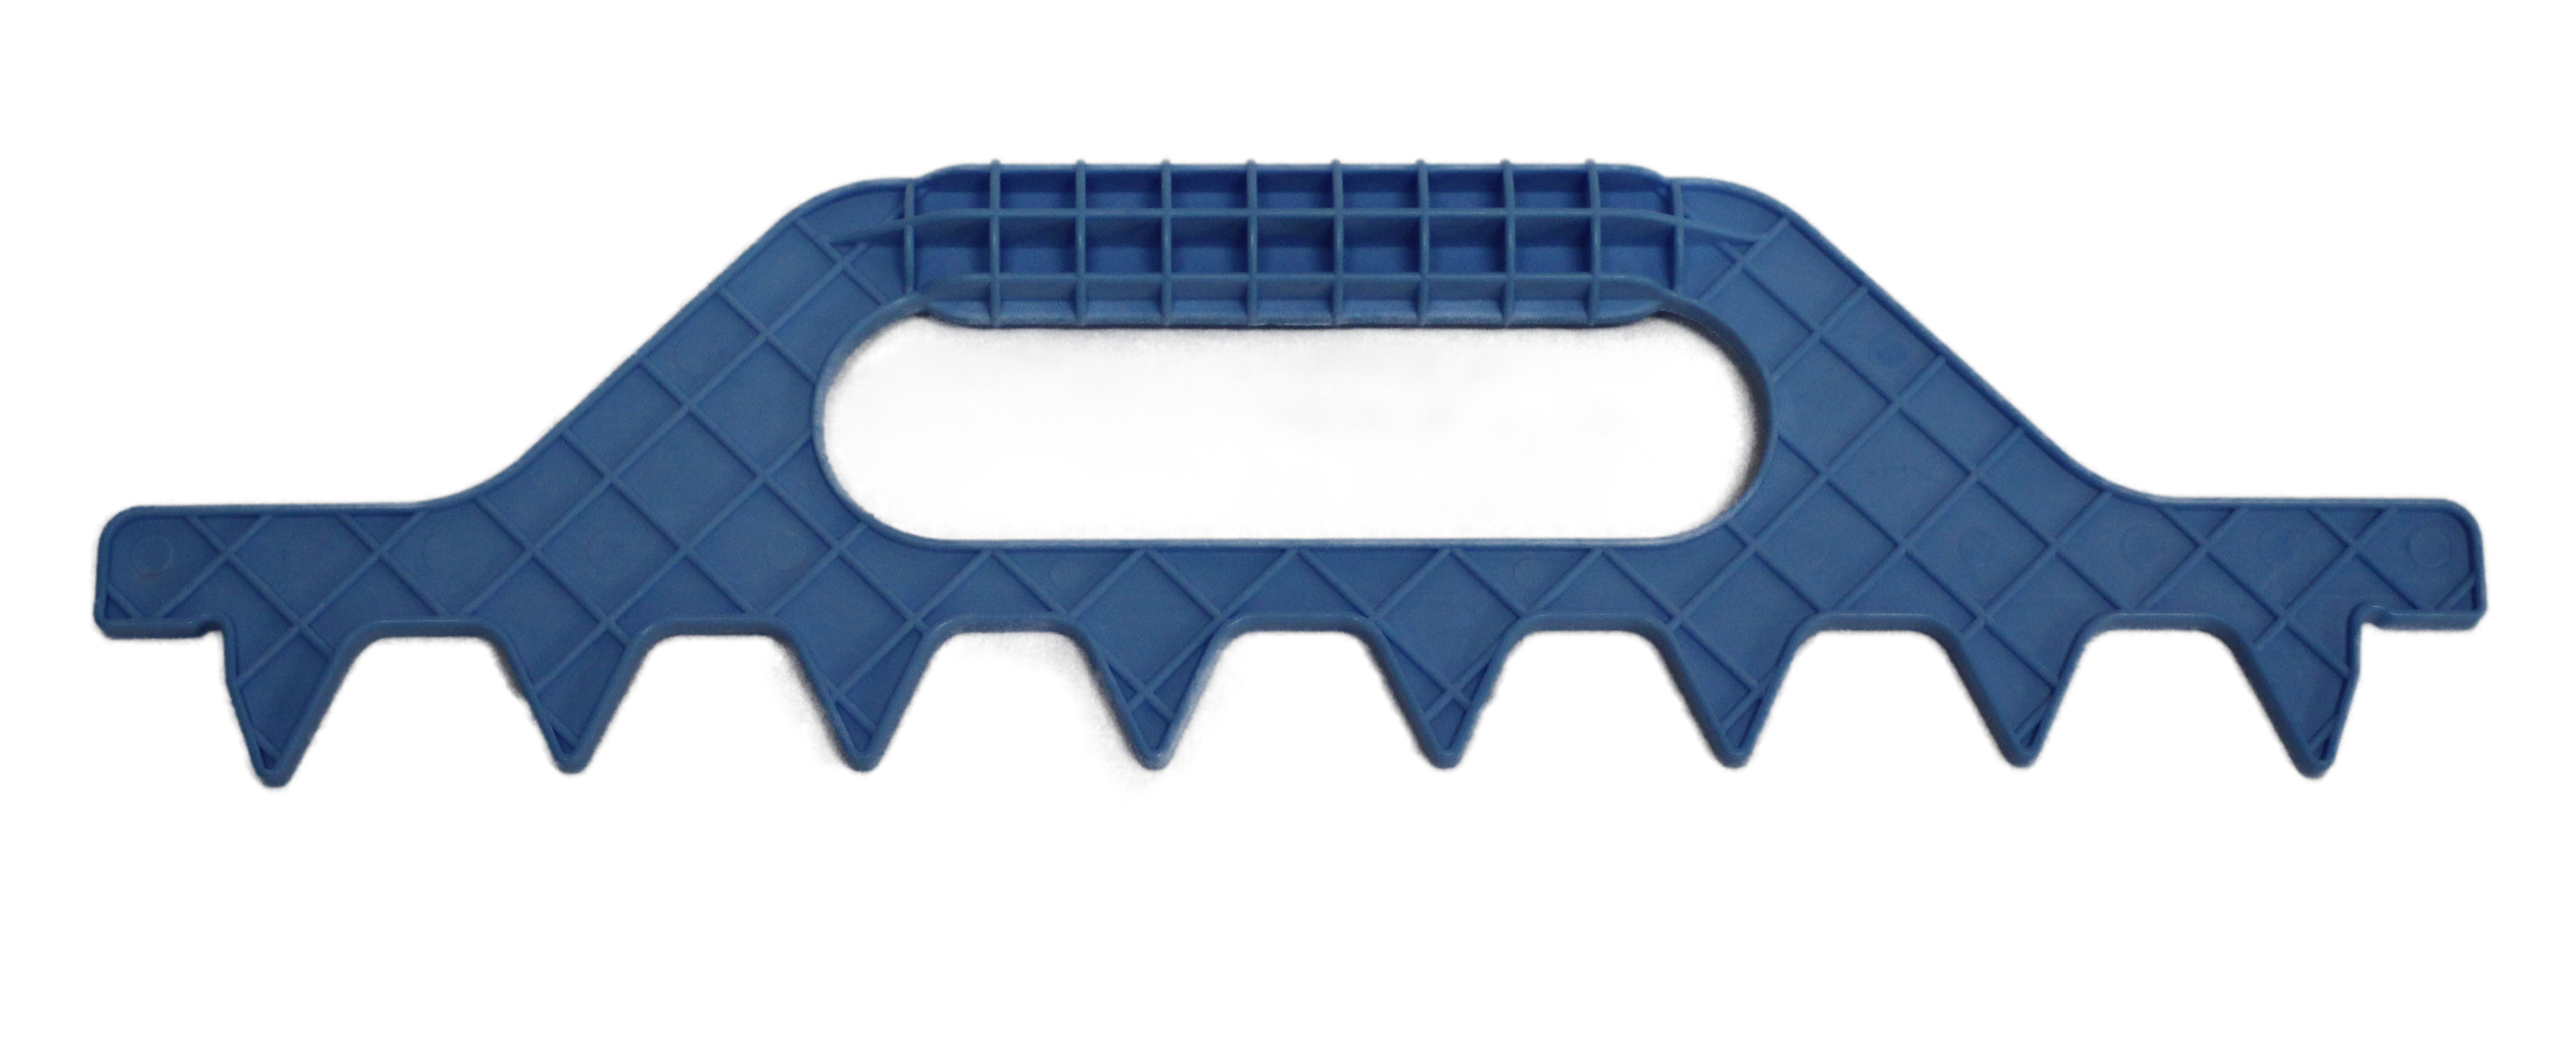 7 Frame Plastic Spacer Tool Blue